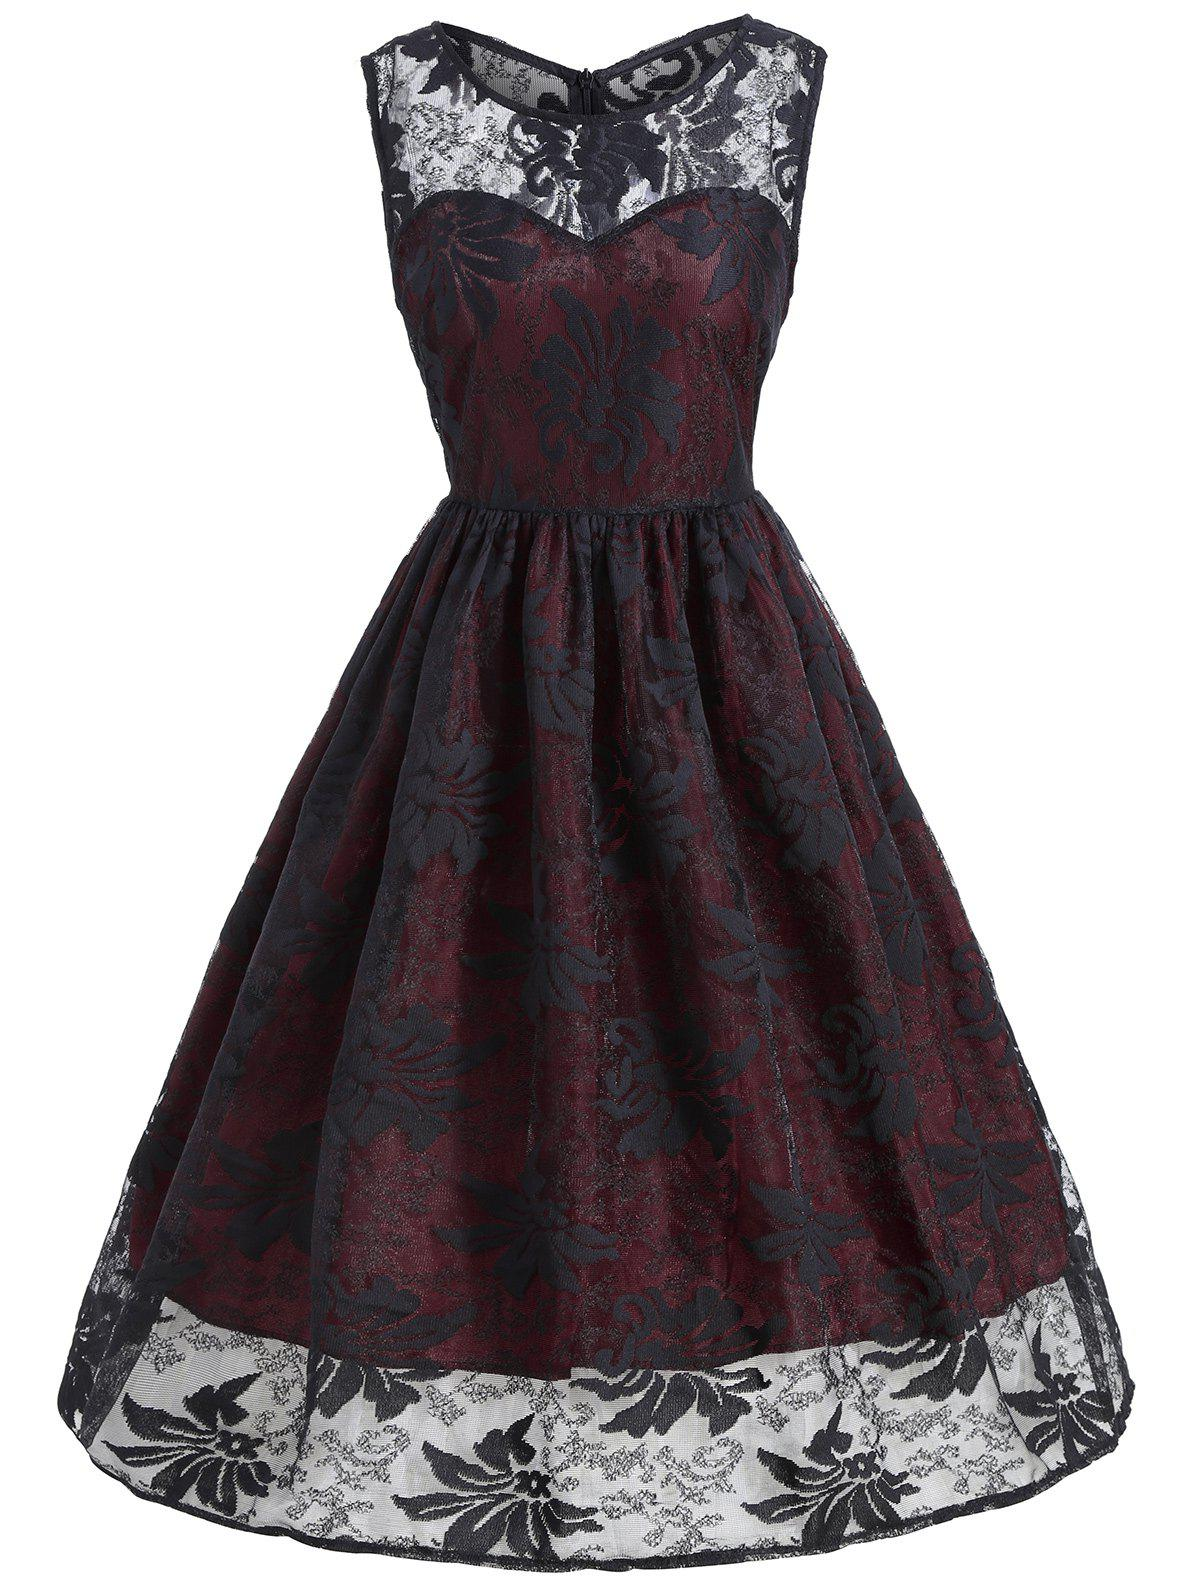 Lace Insert Sleeveless A Line Dress - WINE RED S